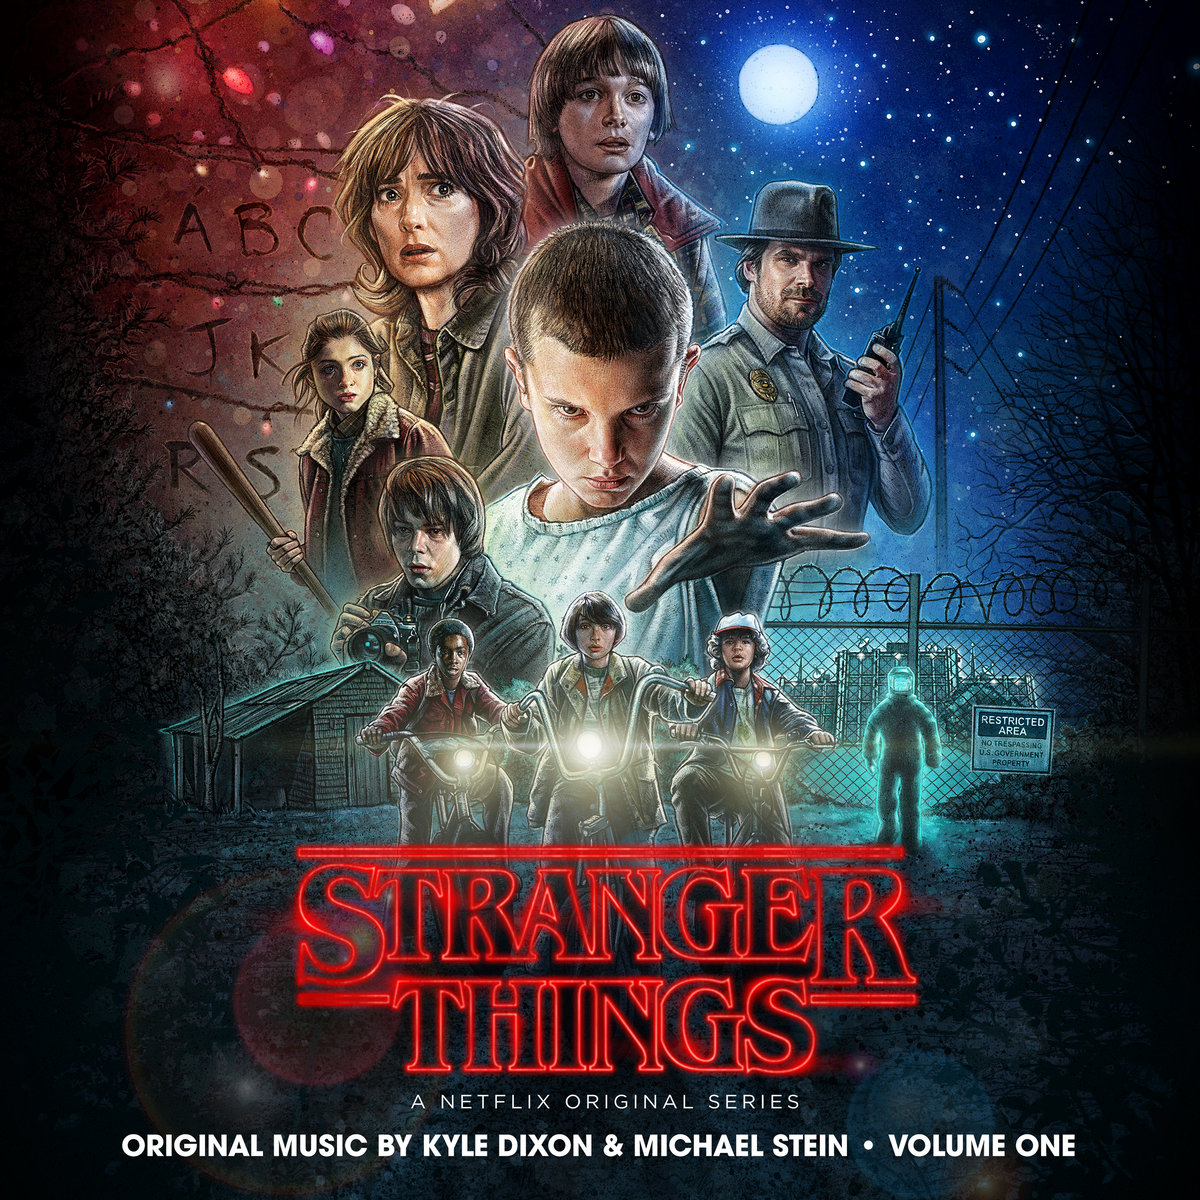 Stranger Things - Volume One | Kyle Dixon & Michael Stein